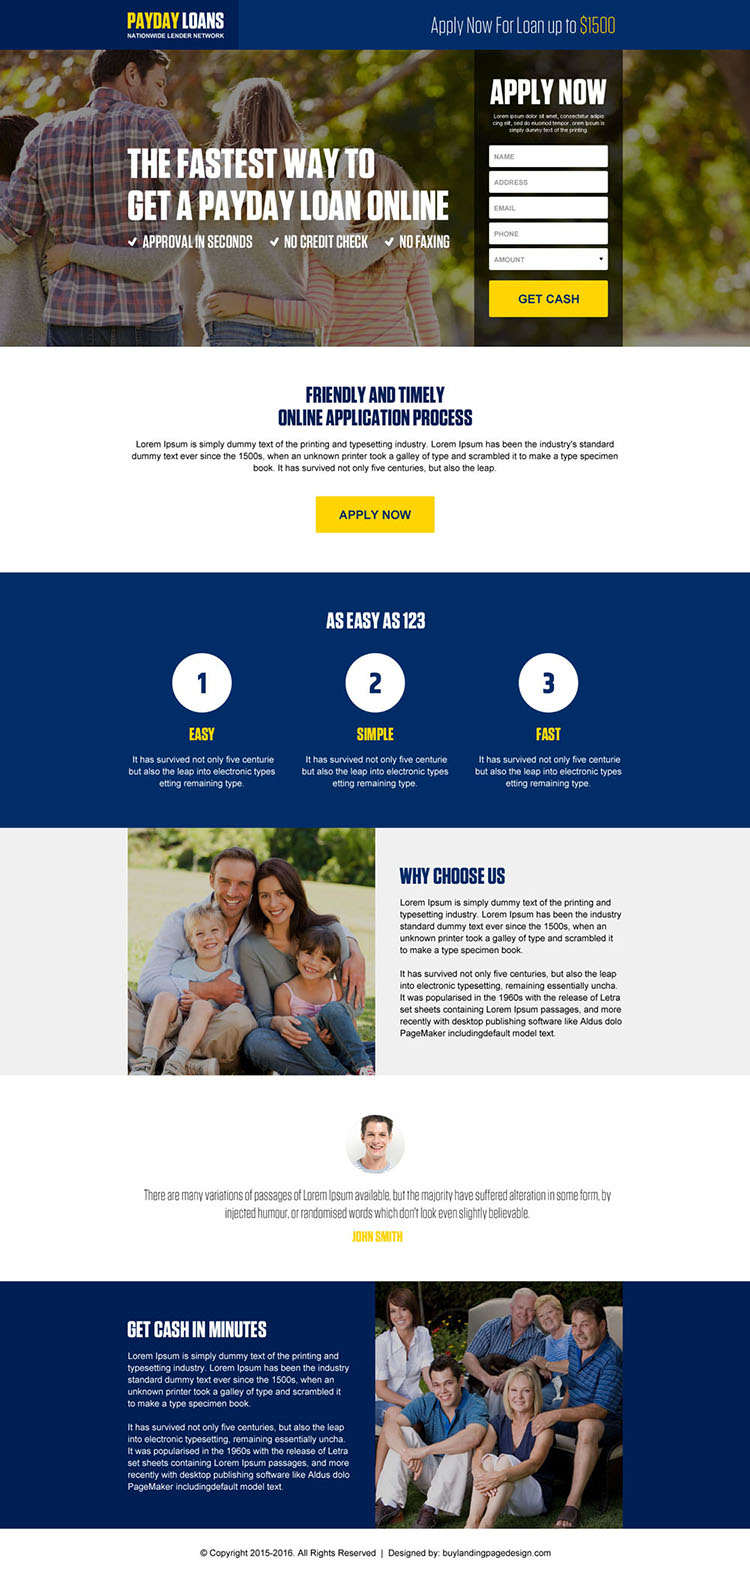 responsive online payday loan landing page design